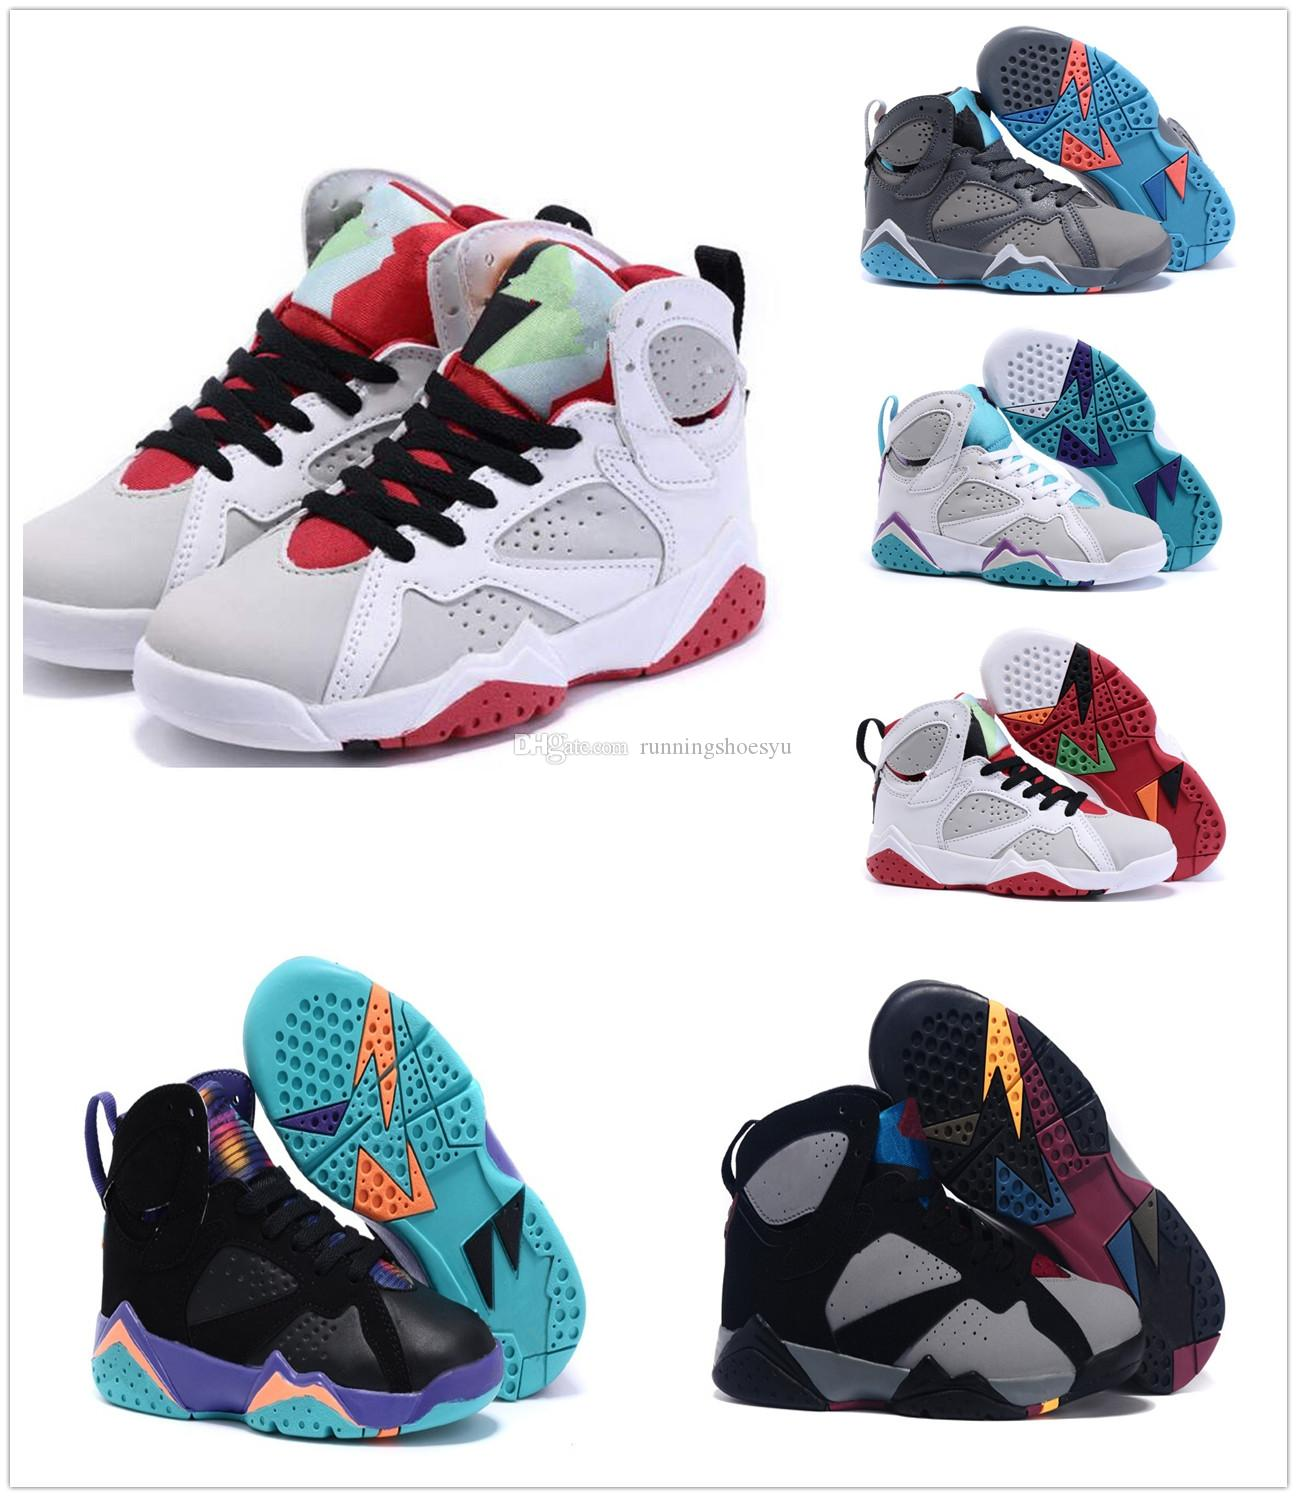 Kids Retro 7 Basetball Shoes For Girls And Boys Breathable Rubber Mesh Kids  Athletic Basketball Shoes Men Basketball Shoes Basket Ball Shoes From ...